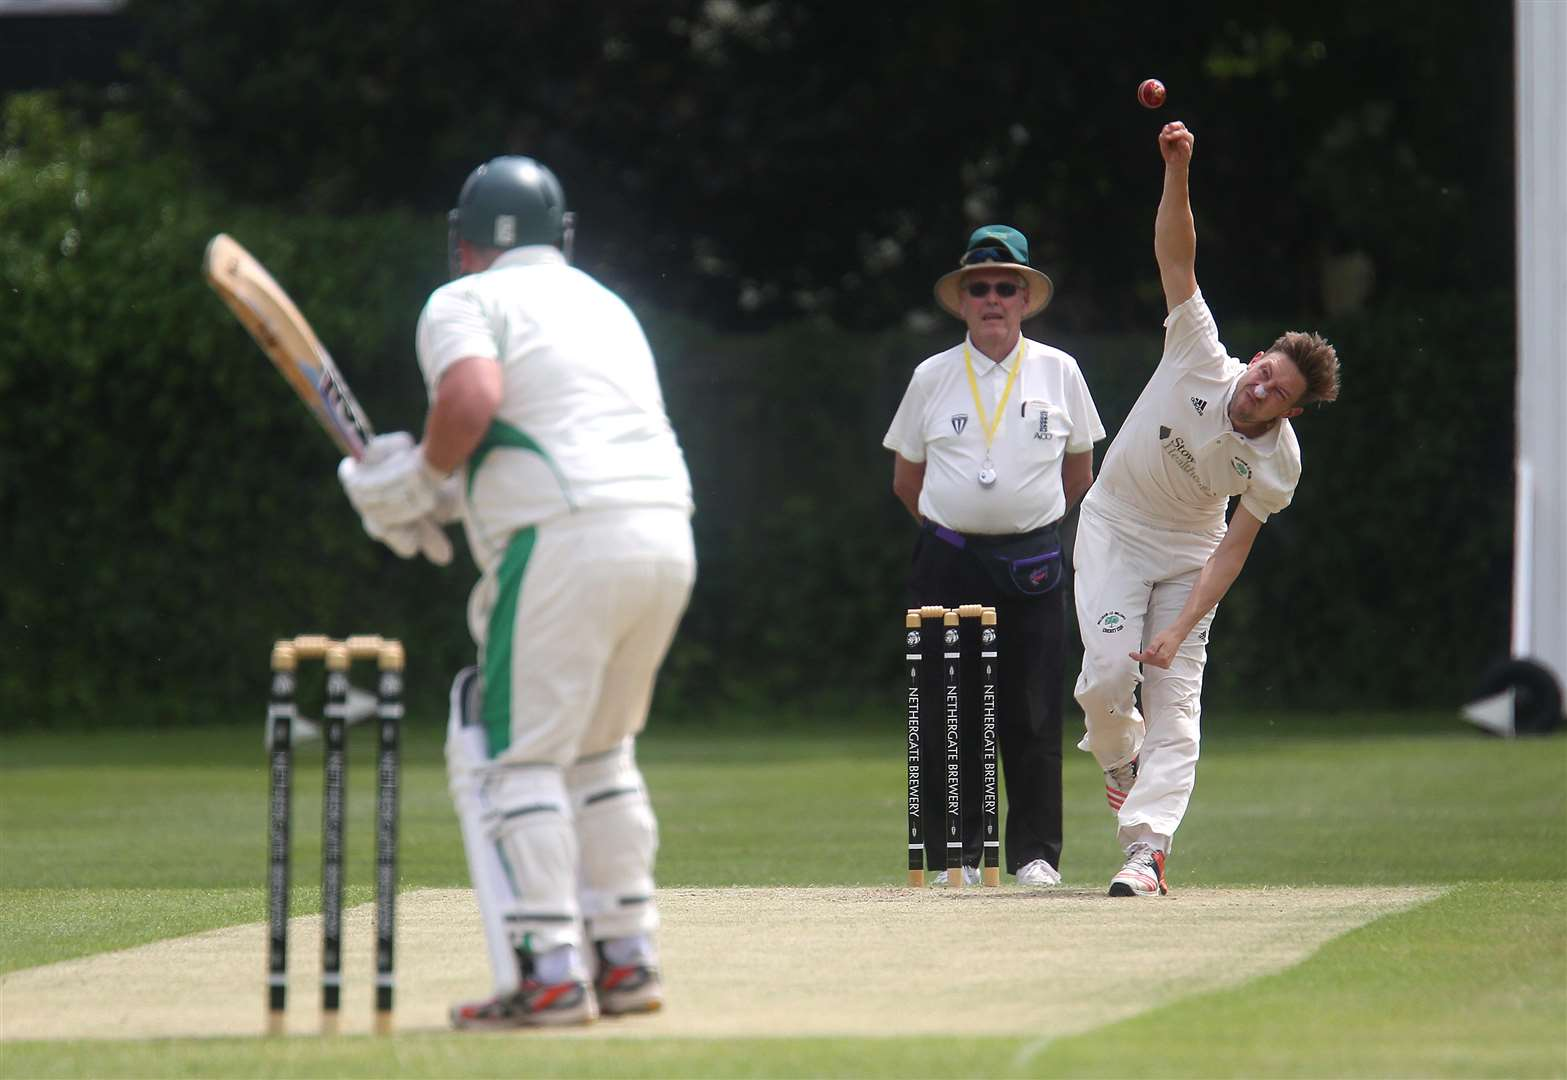 HIGH SCORER: Liam Bryant, pictured bowling, top scored with the bat in Walsham-le-Willows' five-run win at Bury St Edmunds II on Monday. The Walsham captain opened the batting and scored 38 (Pictures: Richard Marsham)